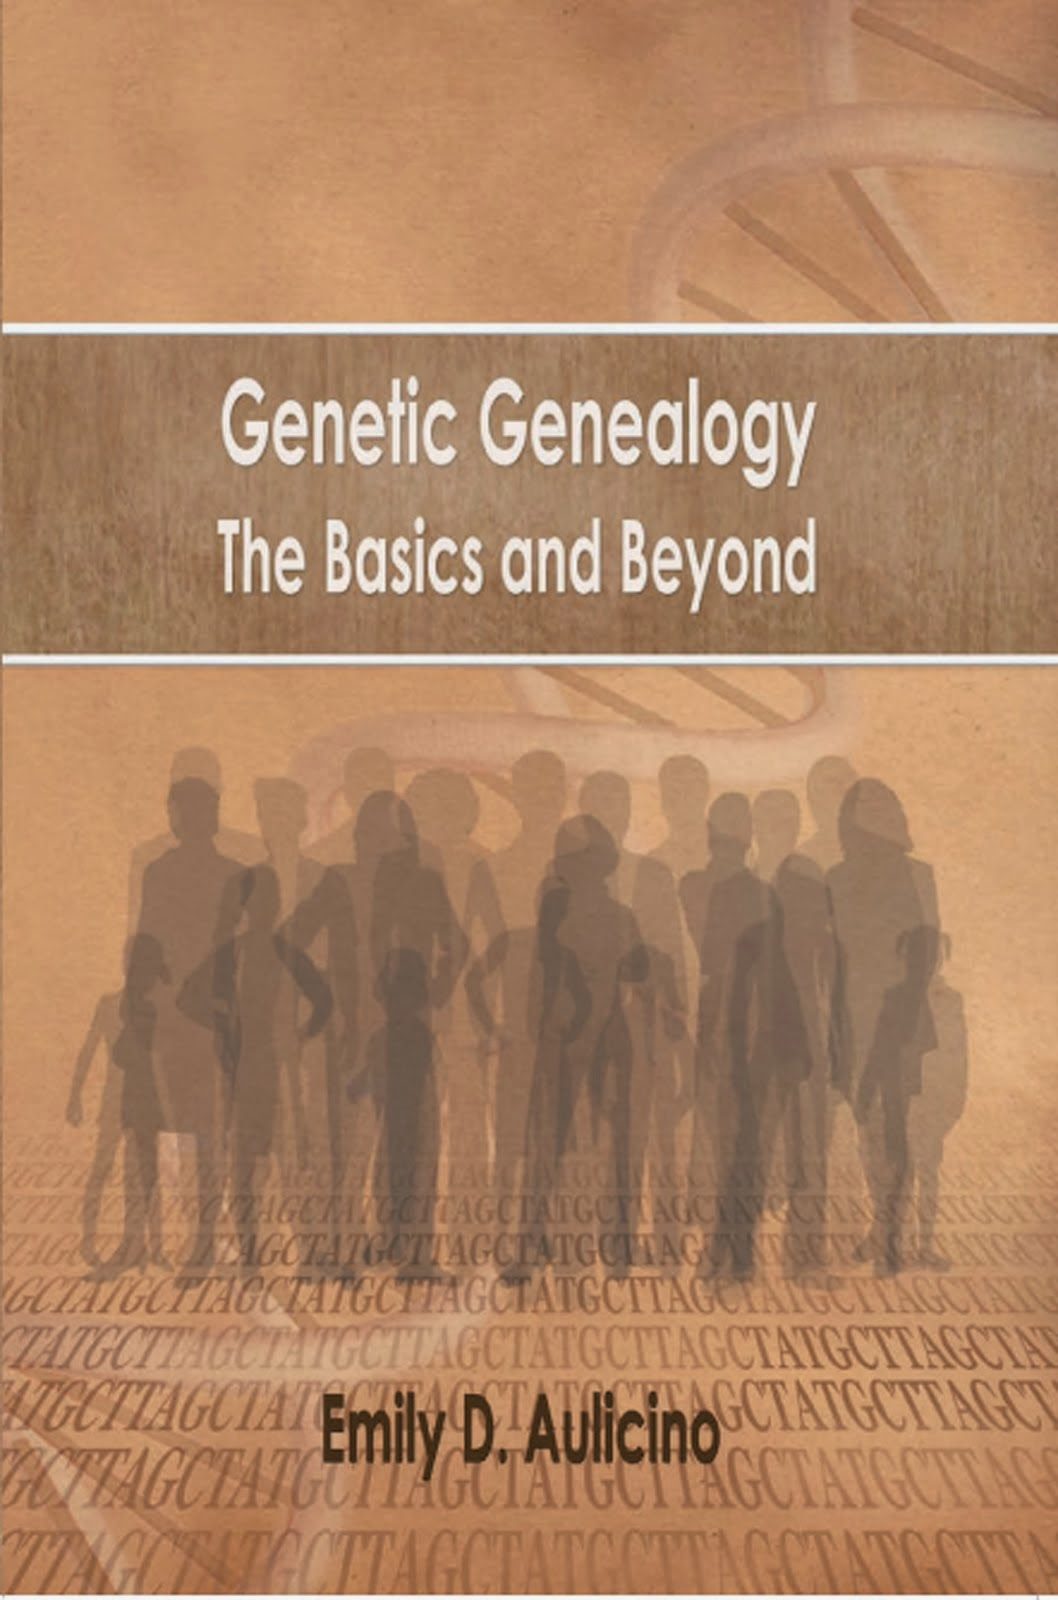 Genetic Genealogy: The Basics and Beyond by Emily D. Aulicino